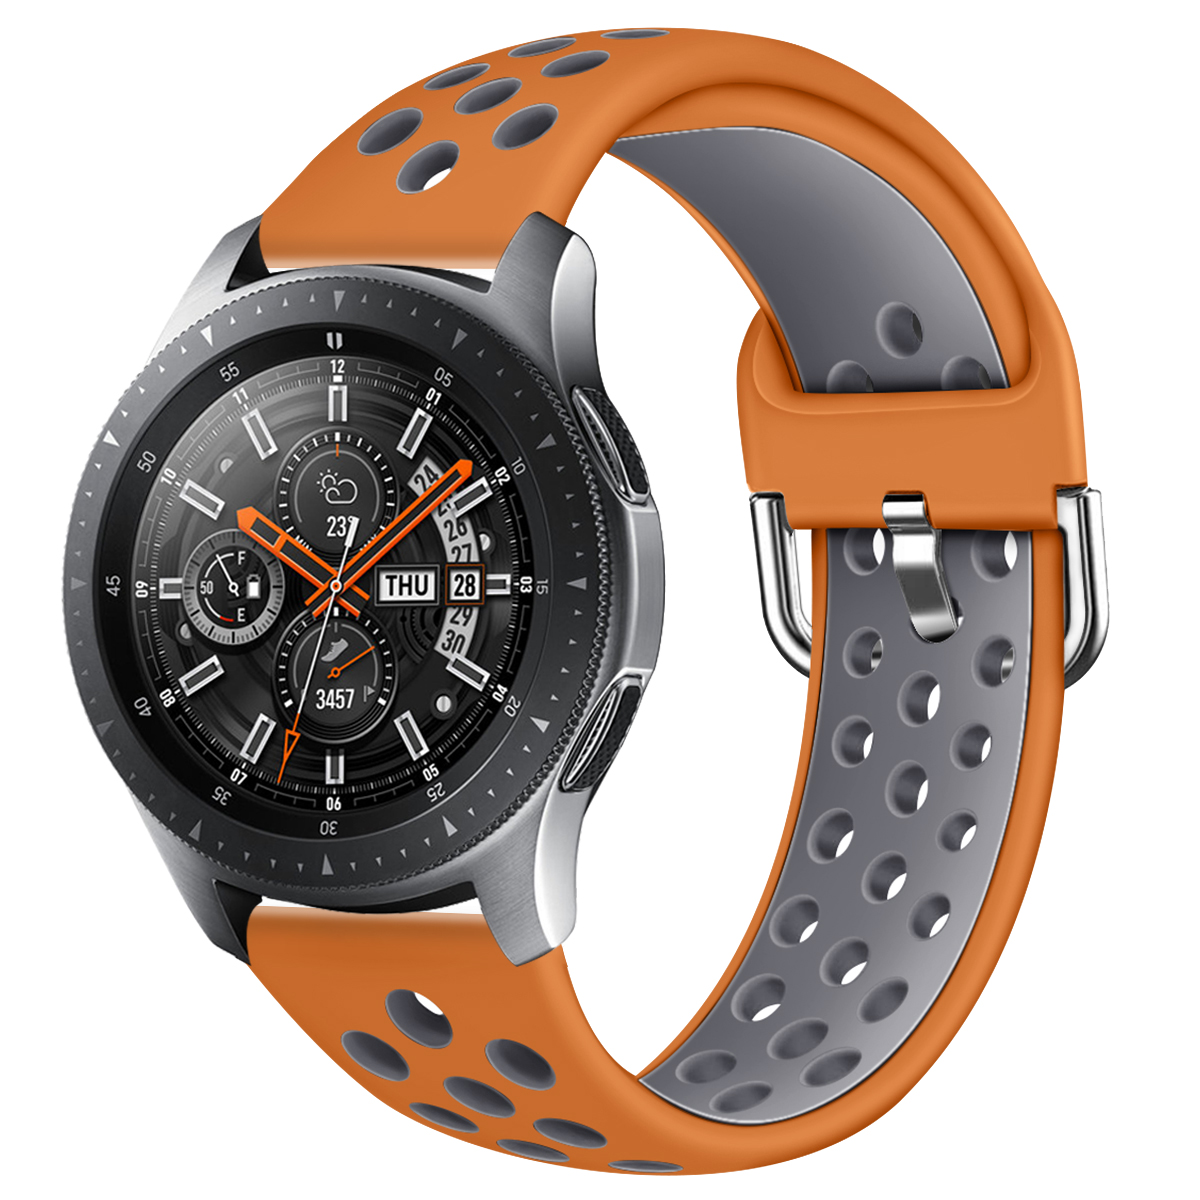 22mm Watchband For Samsung Galaxy Watch 46mm Replacement Bracelet Silicone Band Strap For SM-R800 Huawei GT 2  91002